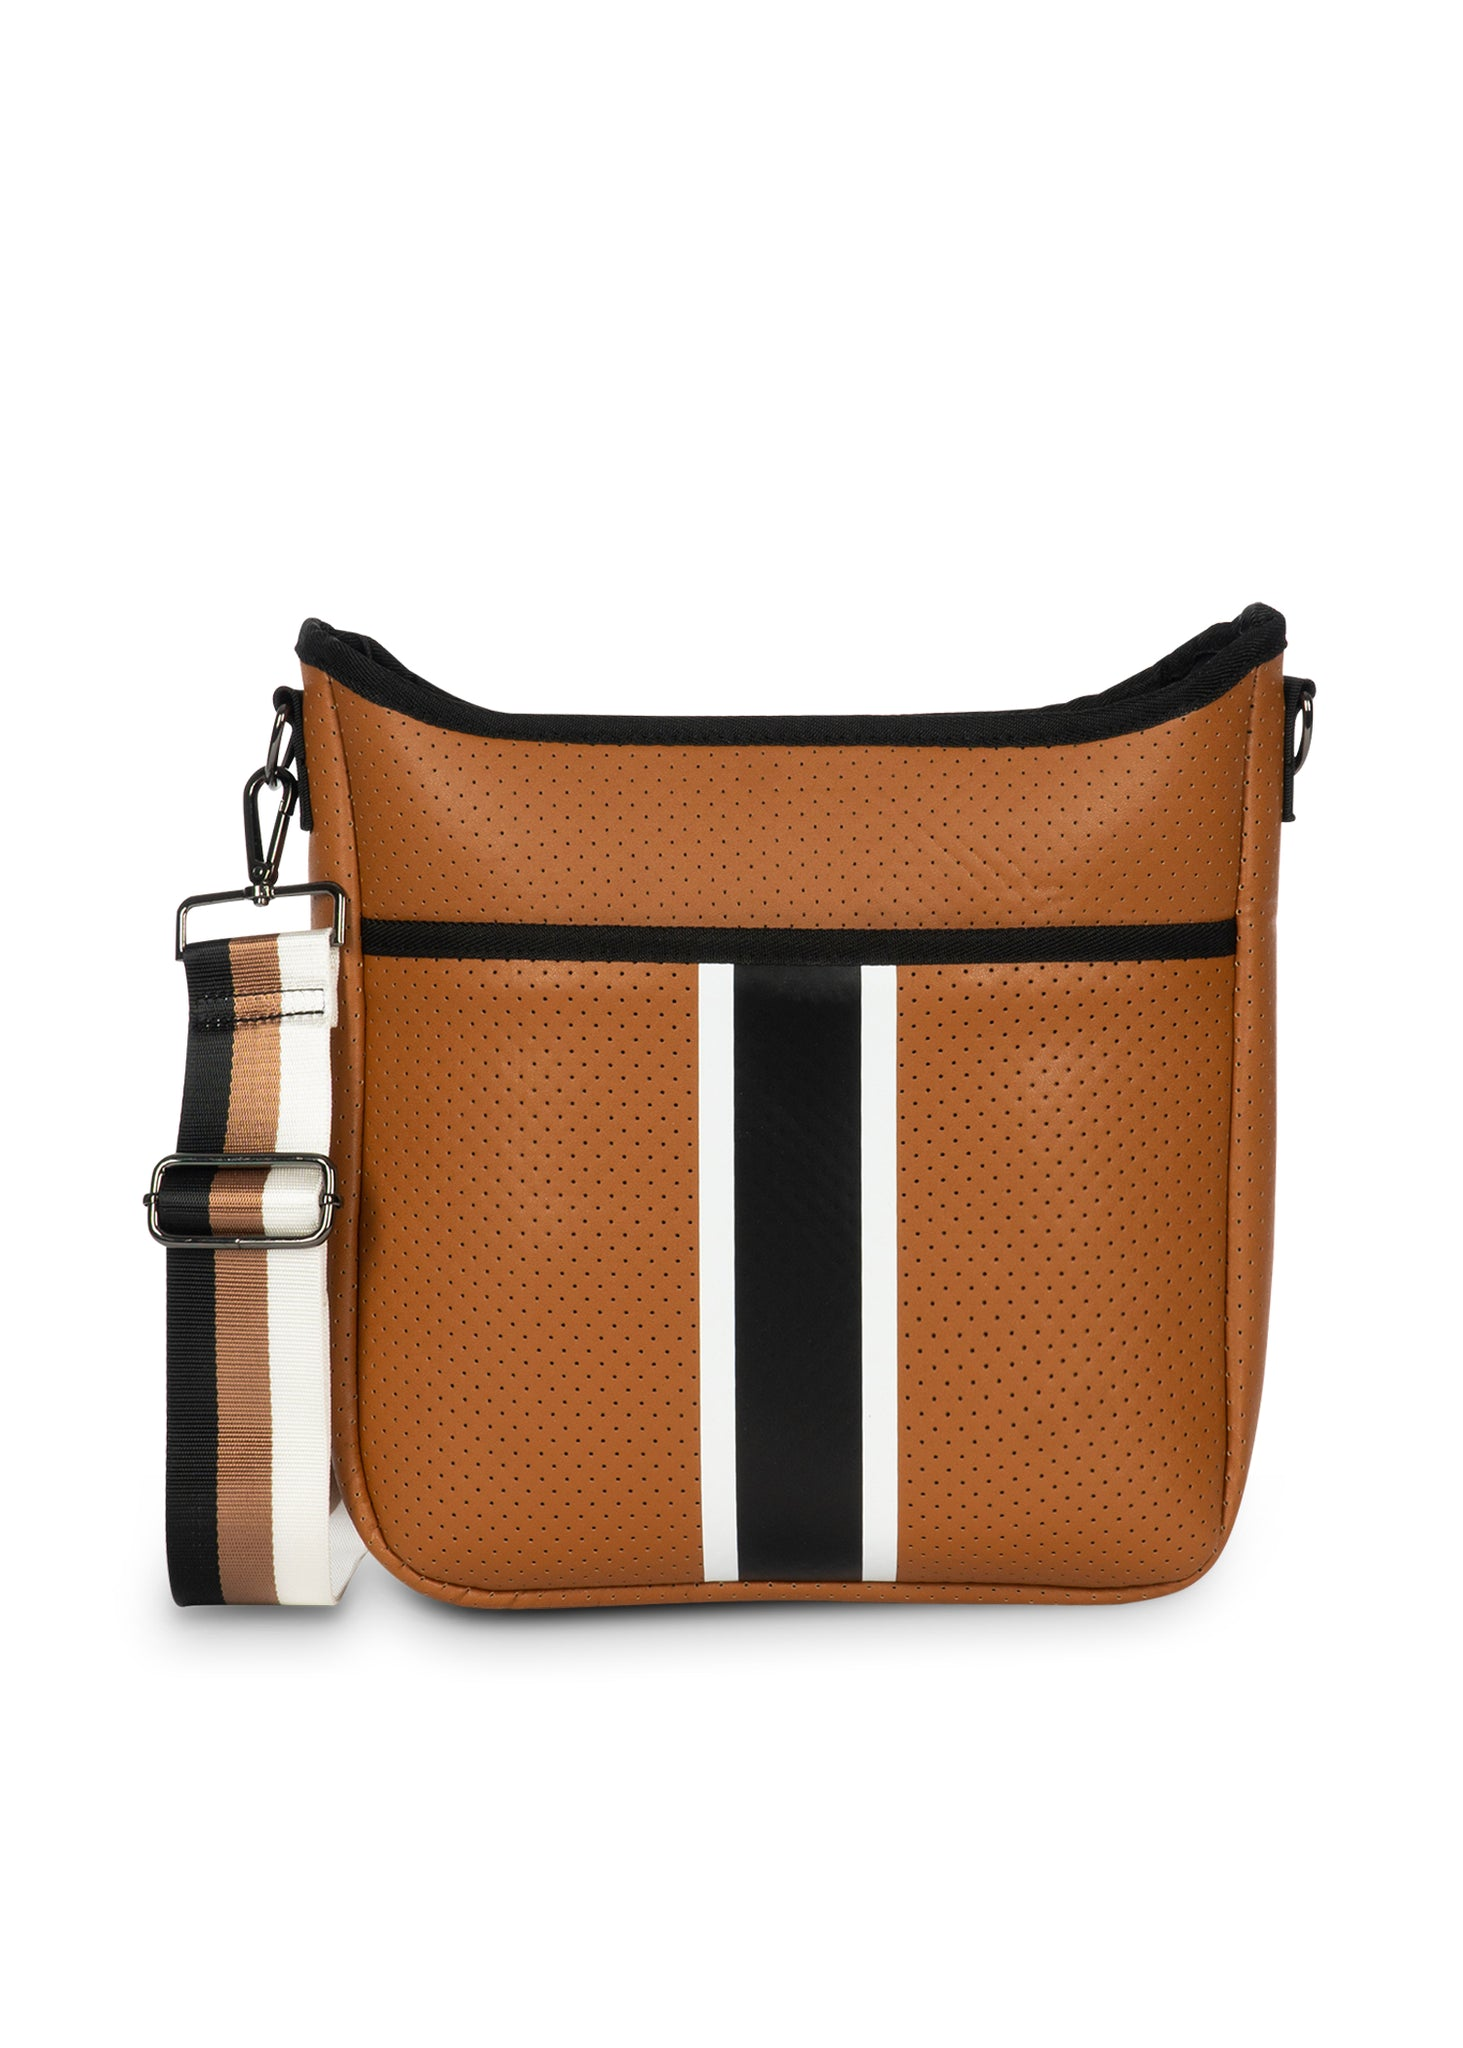 Blake Paris Crossbody